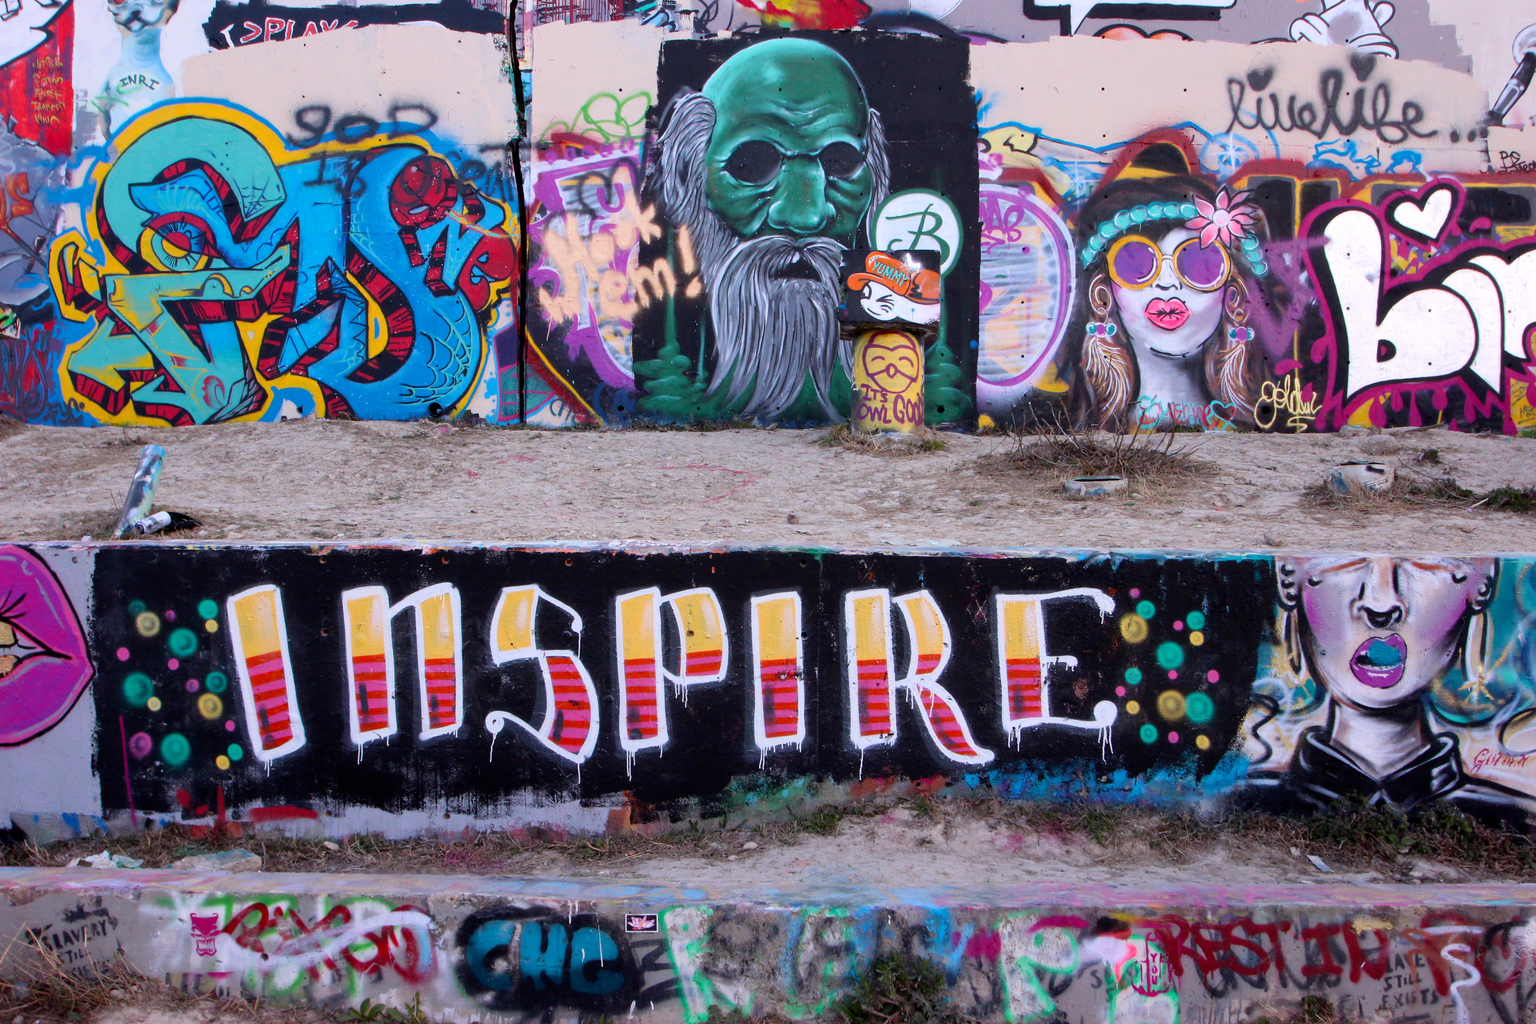 Hope Outdoor Gallery, 1101 Baylor St. Austin, TX